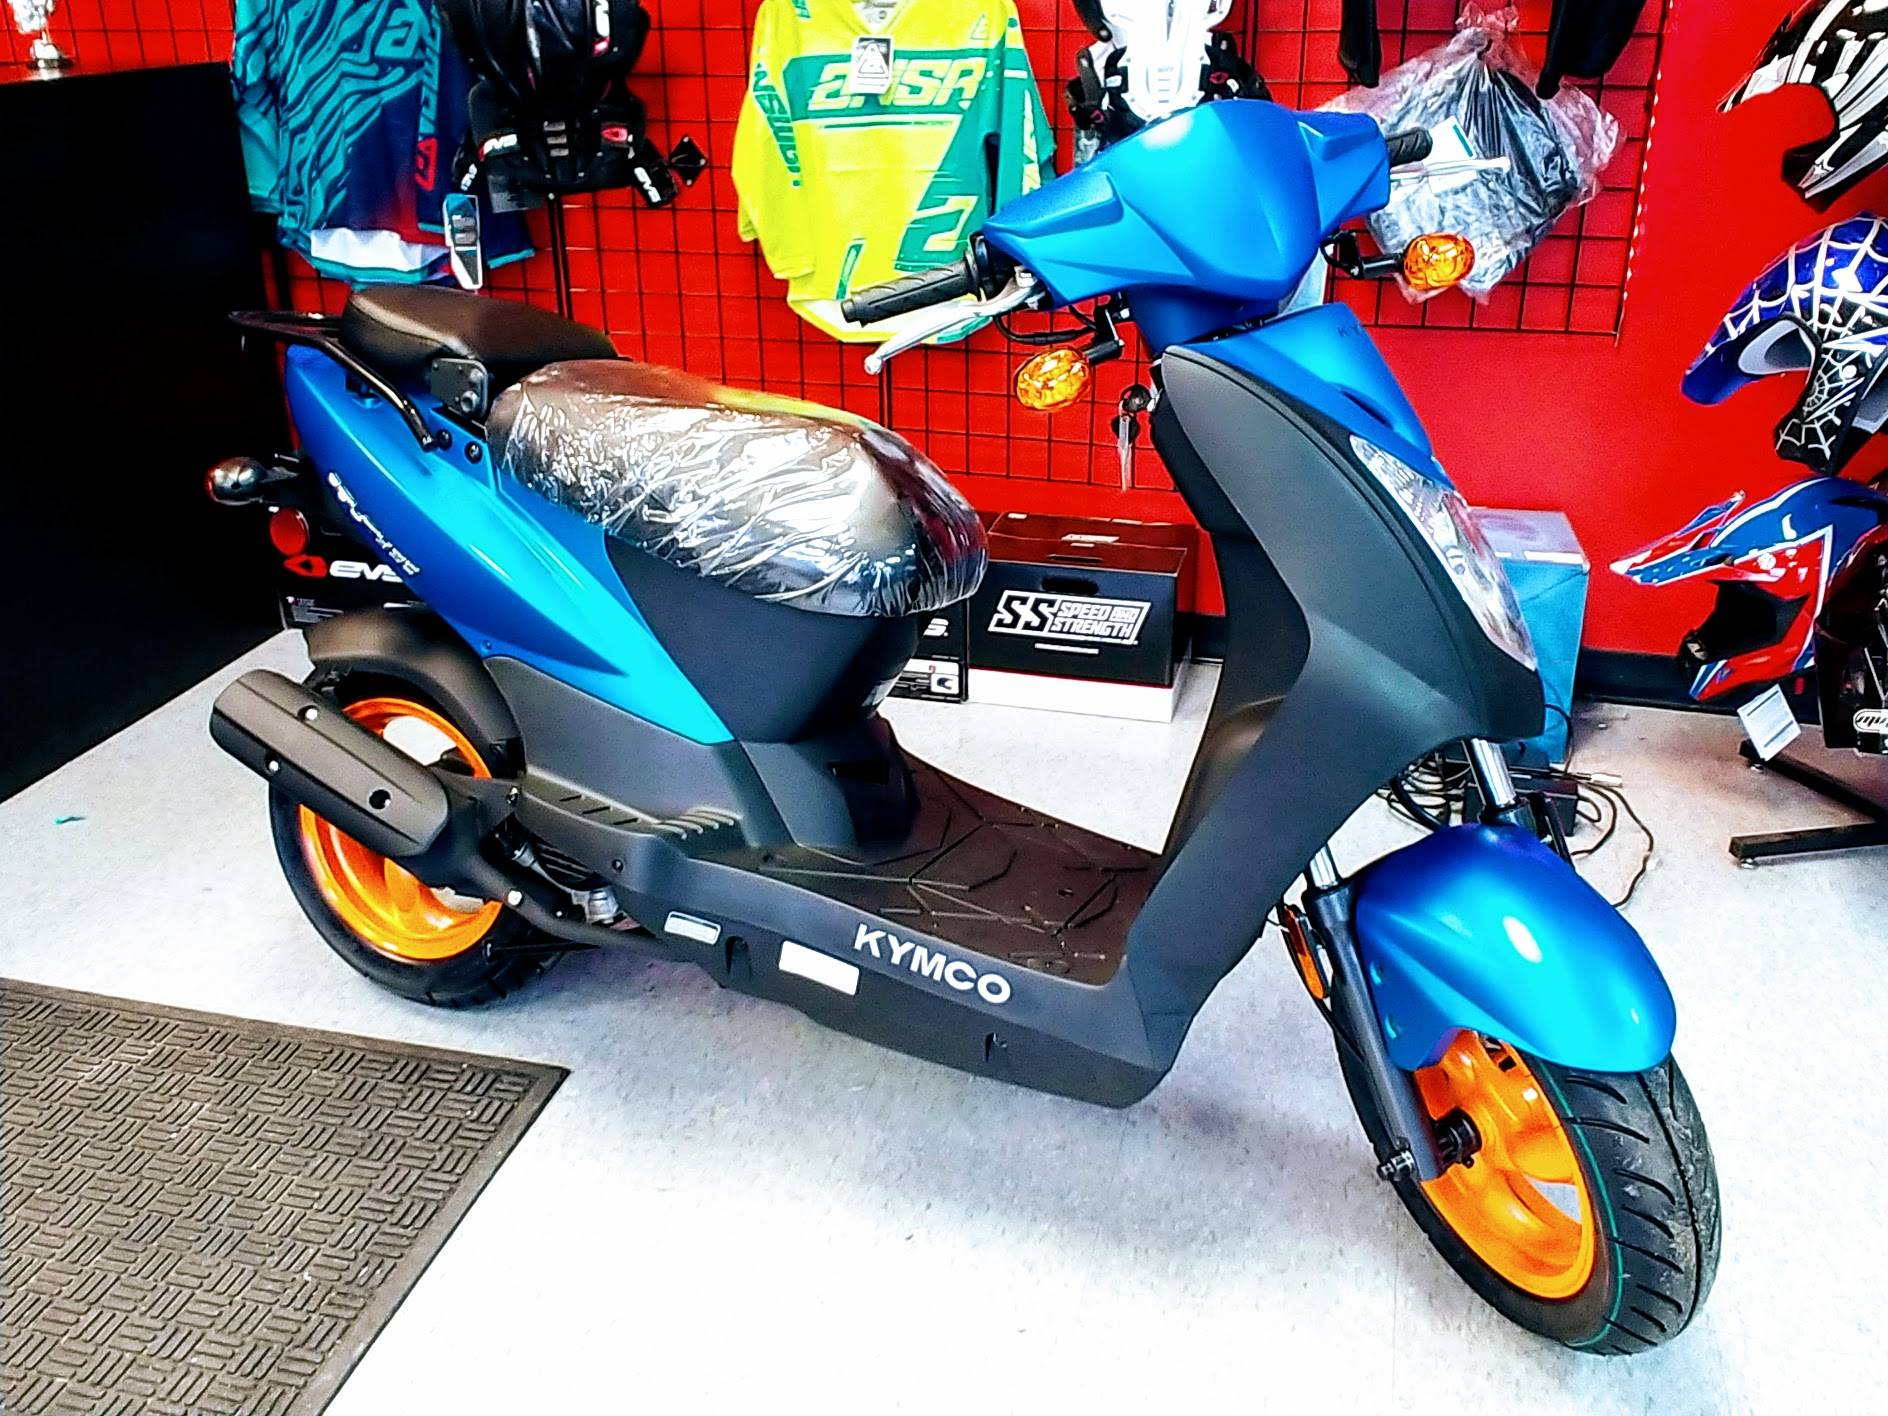 2019 Kymco Agility 50 in Virginia Beach, Virginia - Photo 1